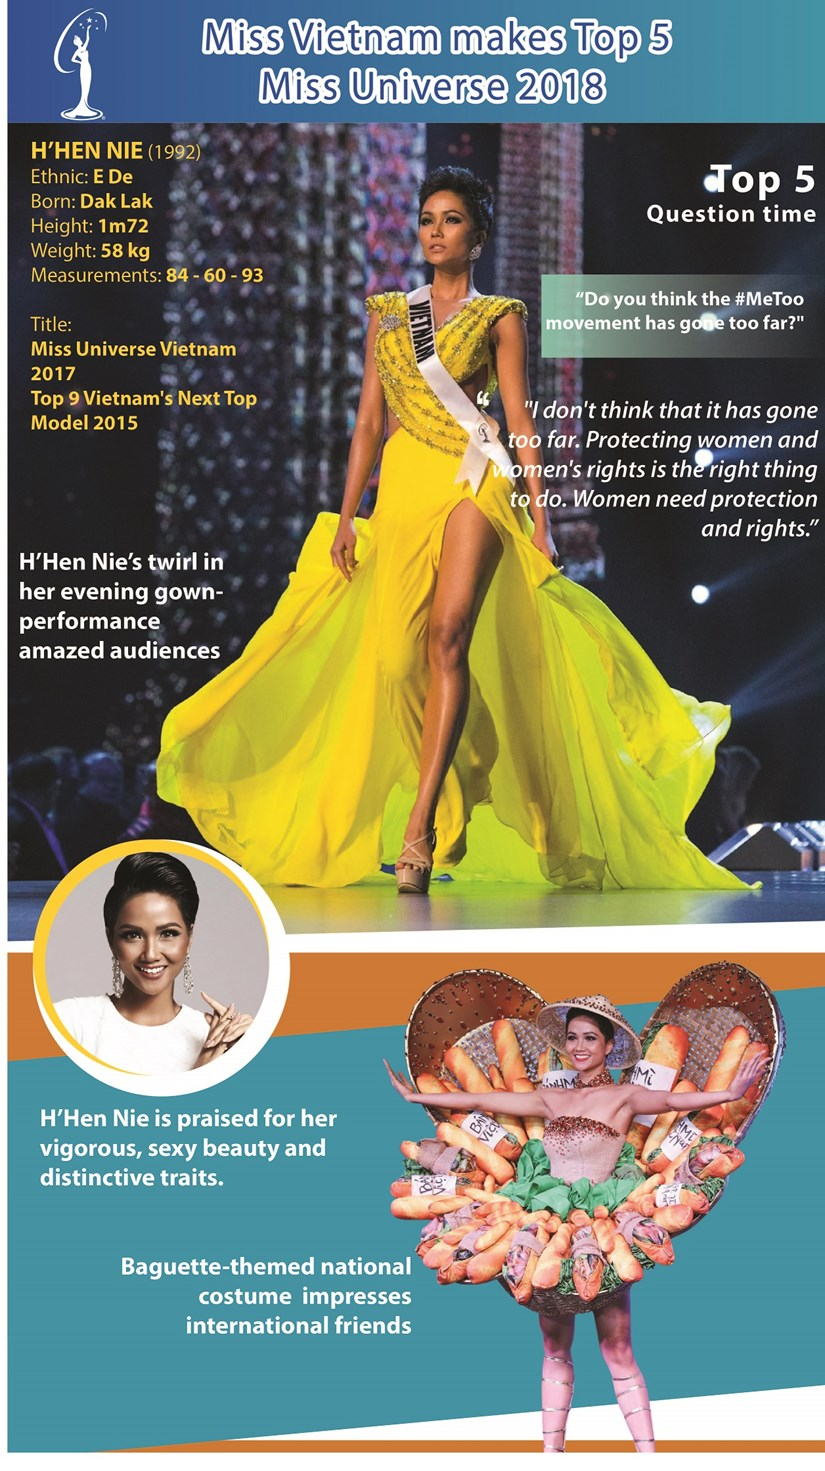 Miss Vietnam makes Miss Universe Top 5 hinh anh 1